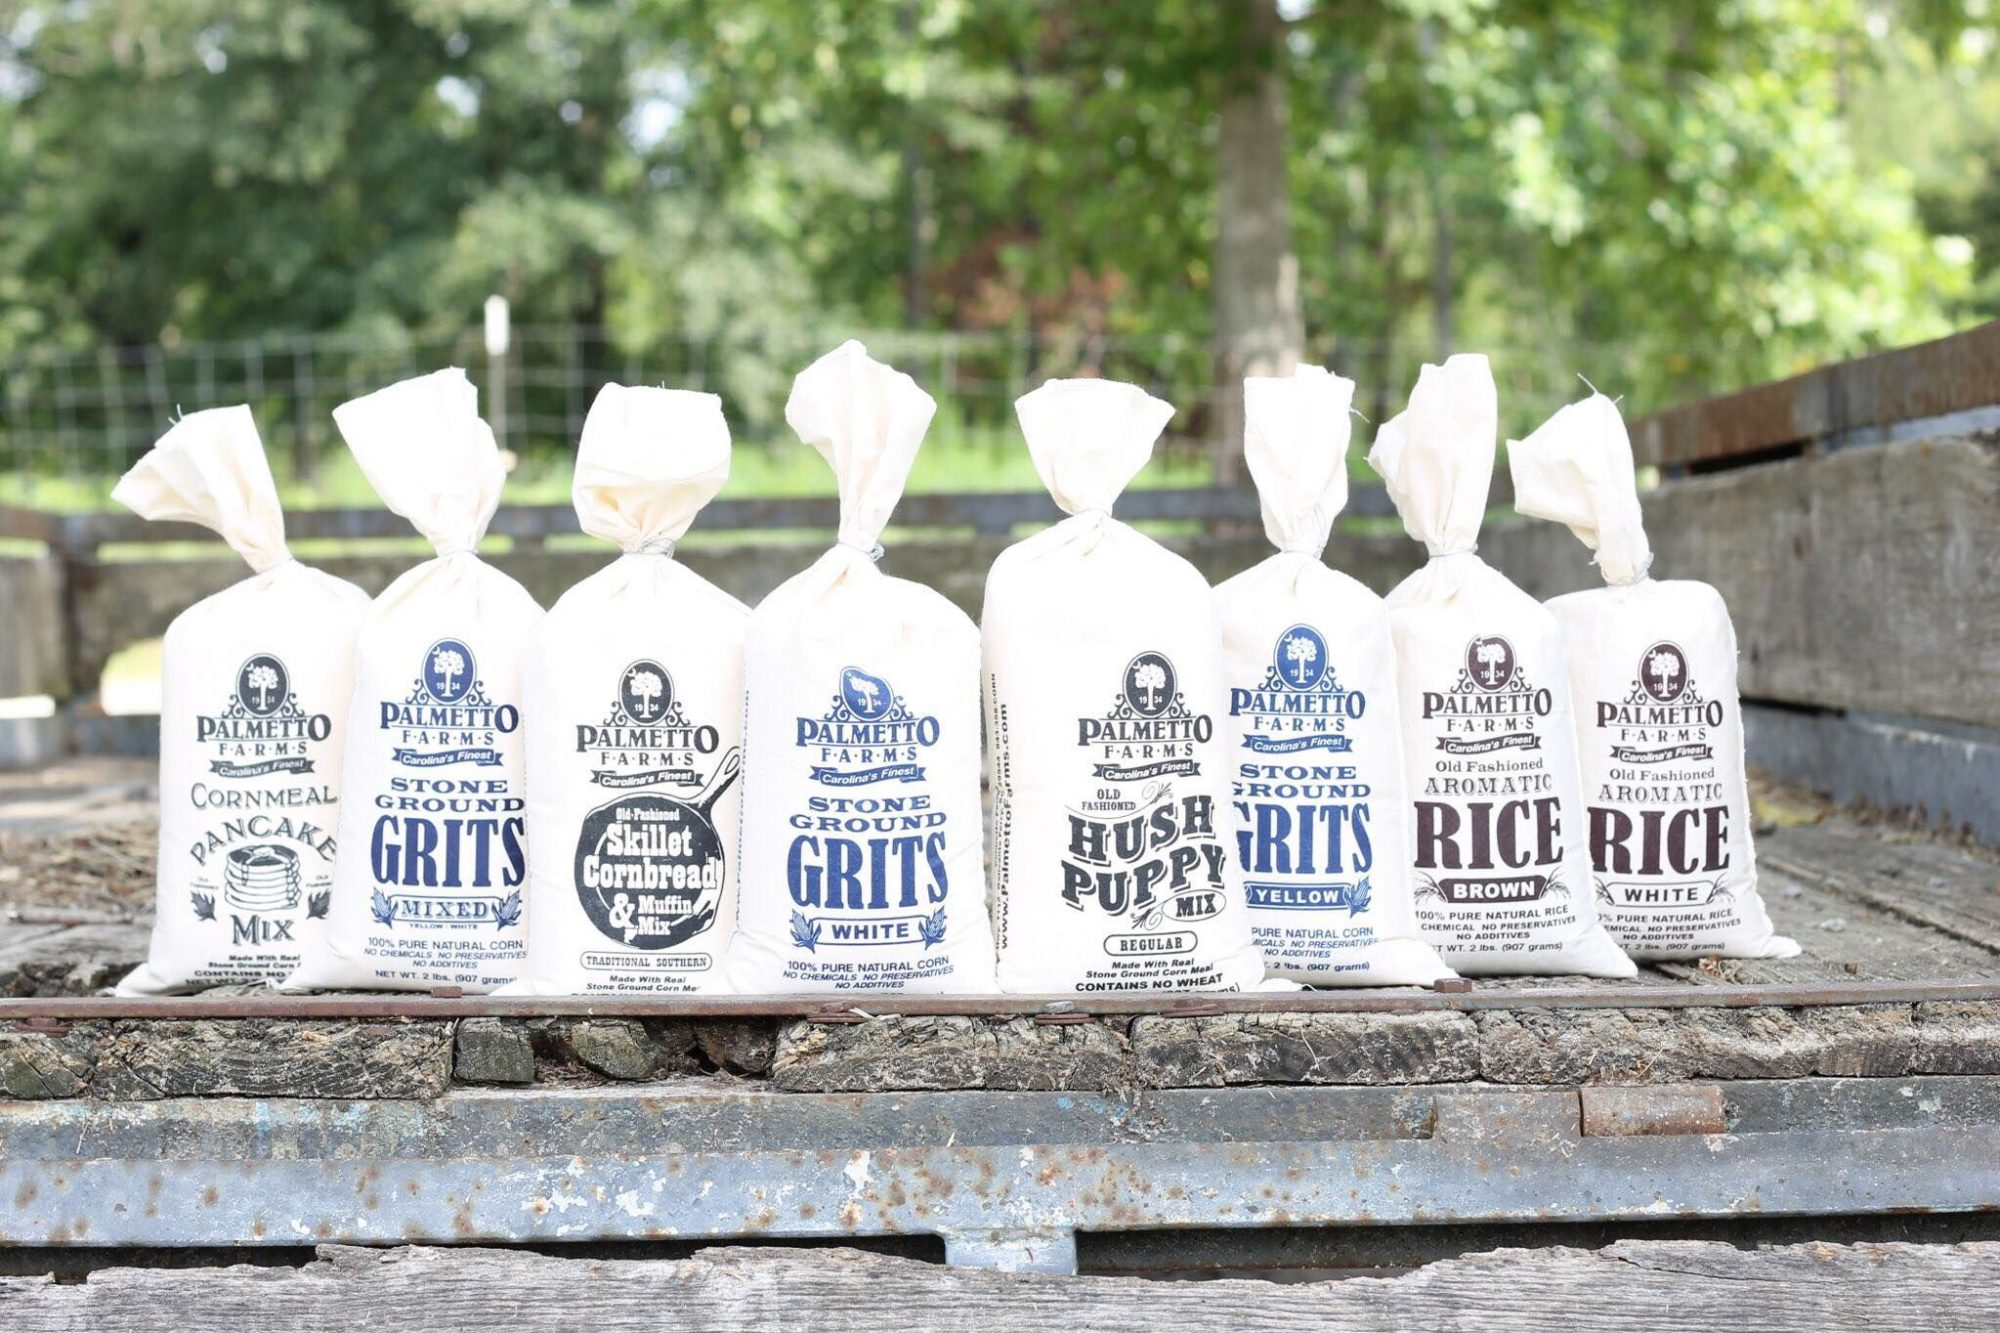 The Best-Selling Grits on Amazon Come from This Tiny Southern Town